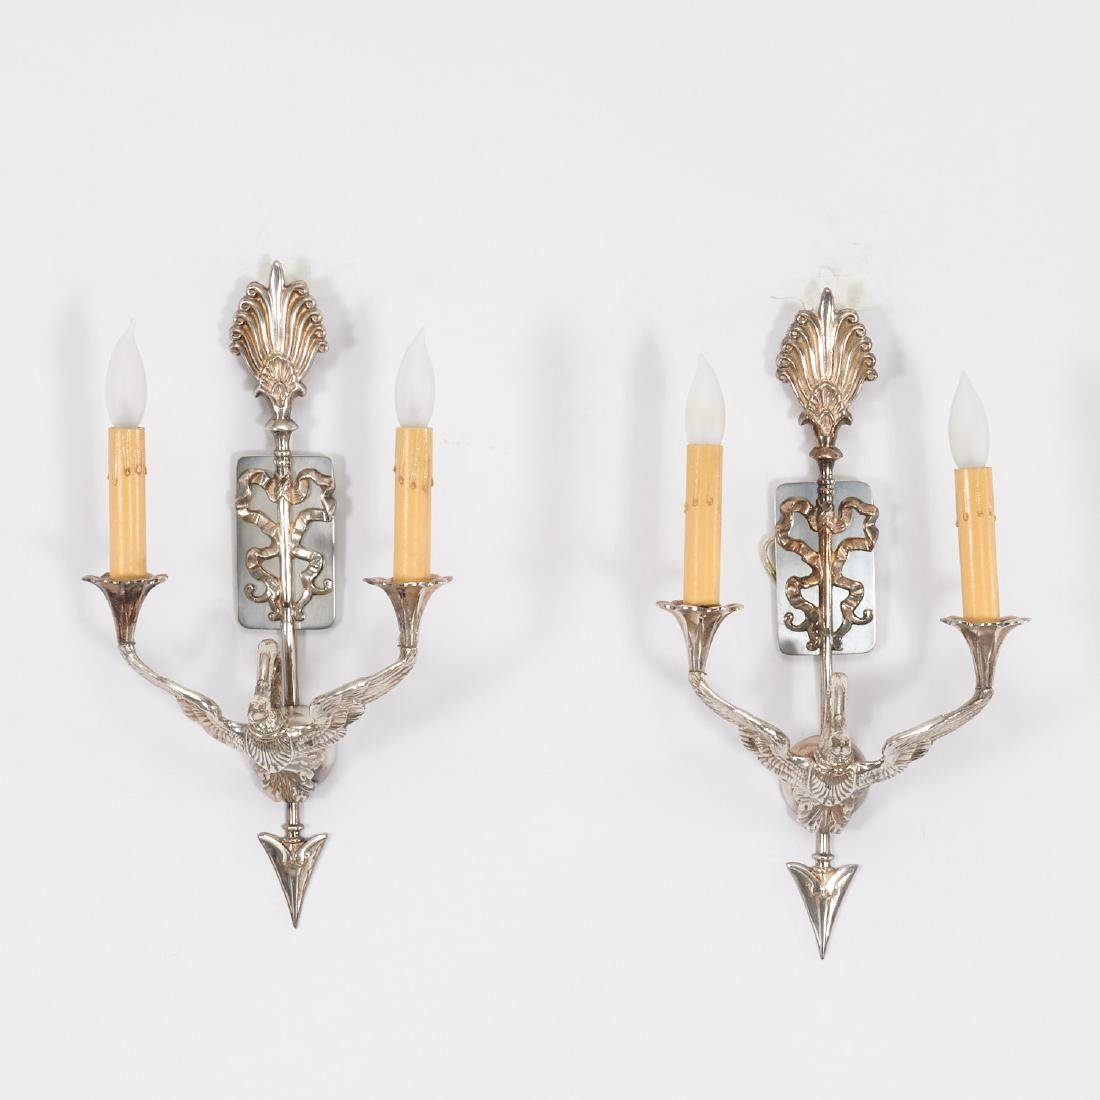 Pair Empire style silver plated swan sconces